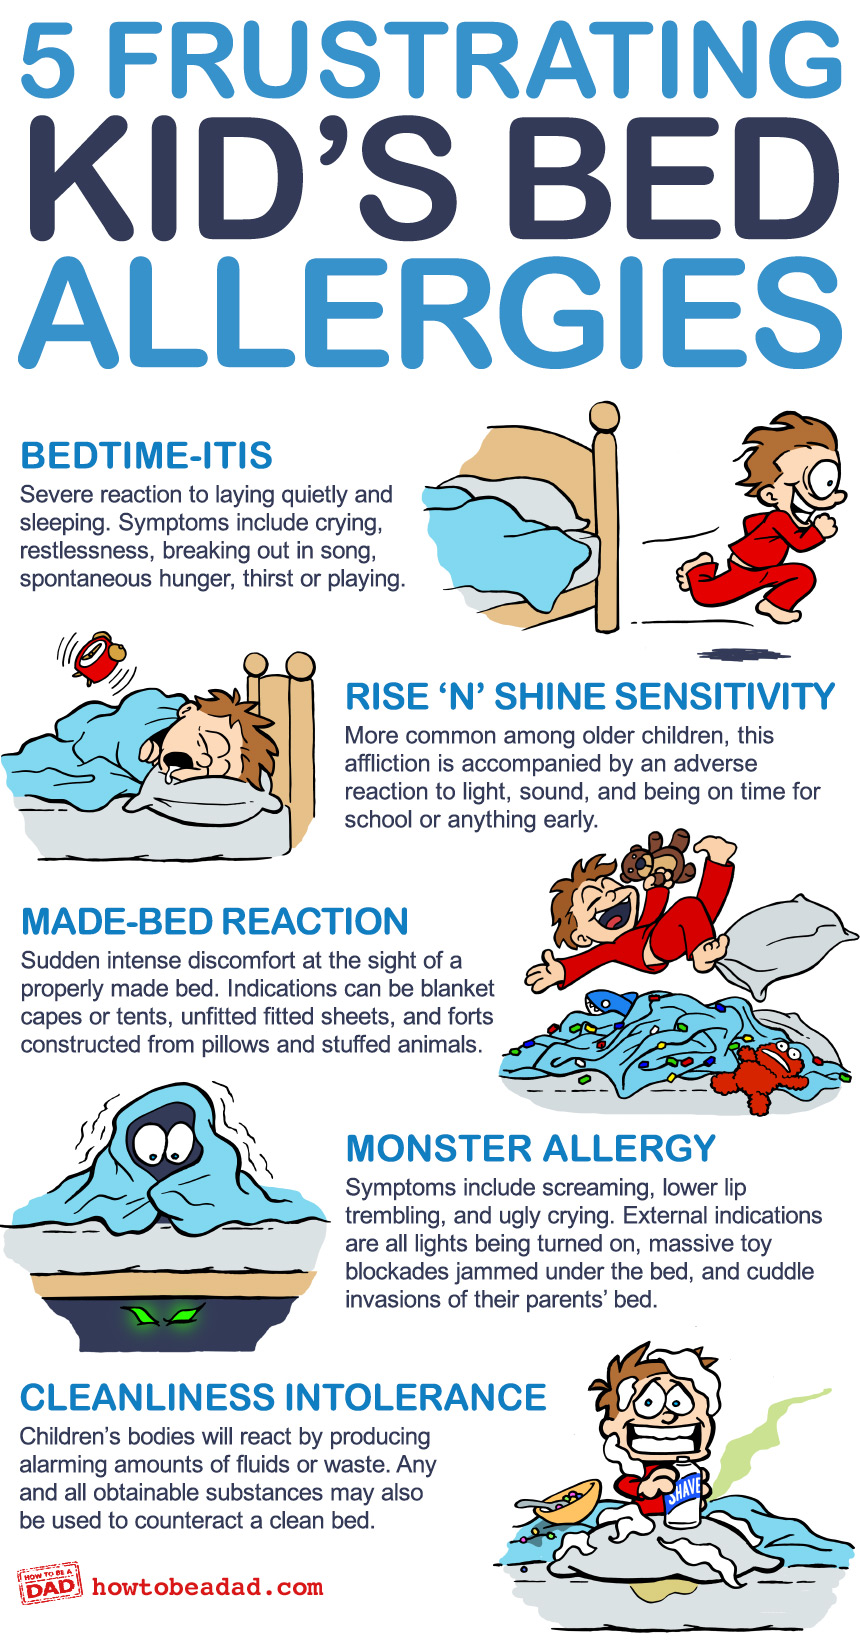 5 Funny Frustrating Kids Bed Allergies